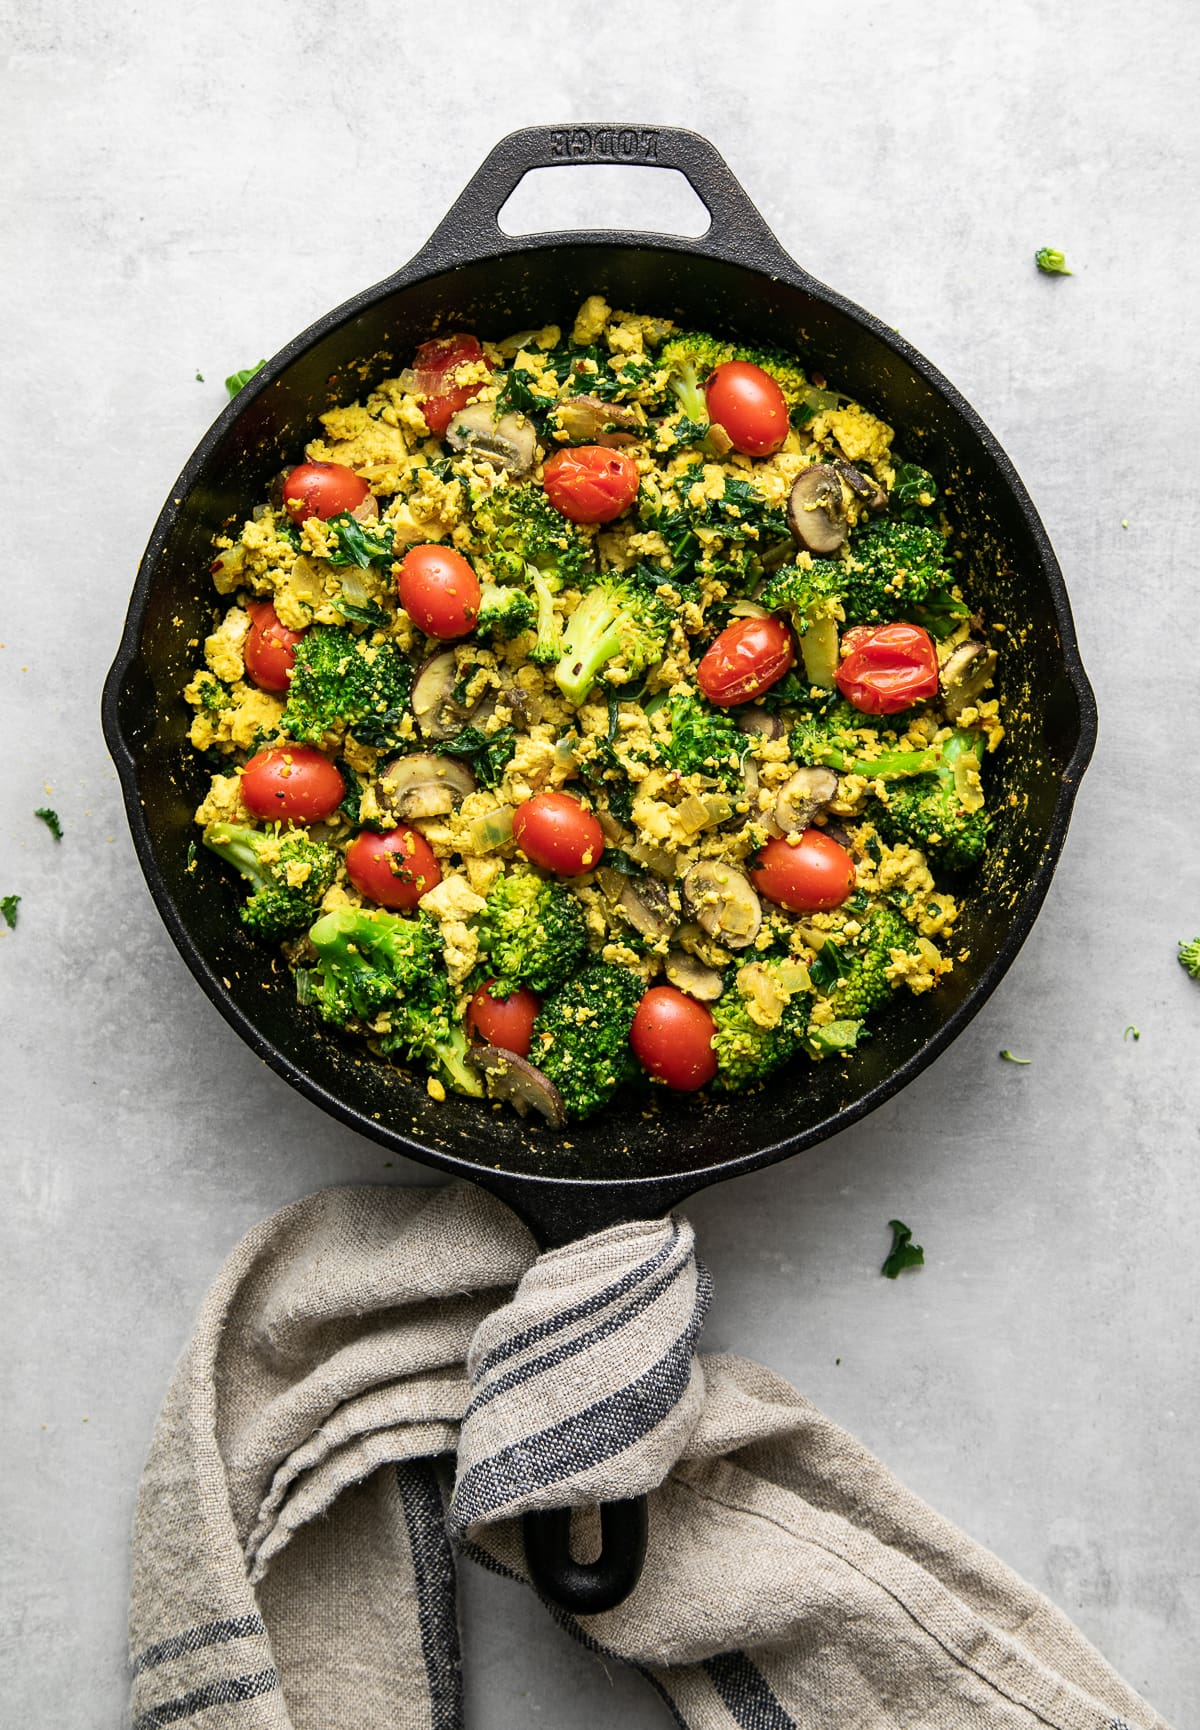 top down view of freshly made vegan southwest tofu scramble in a skillet.